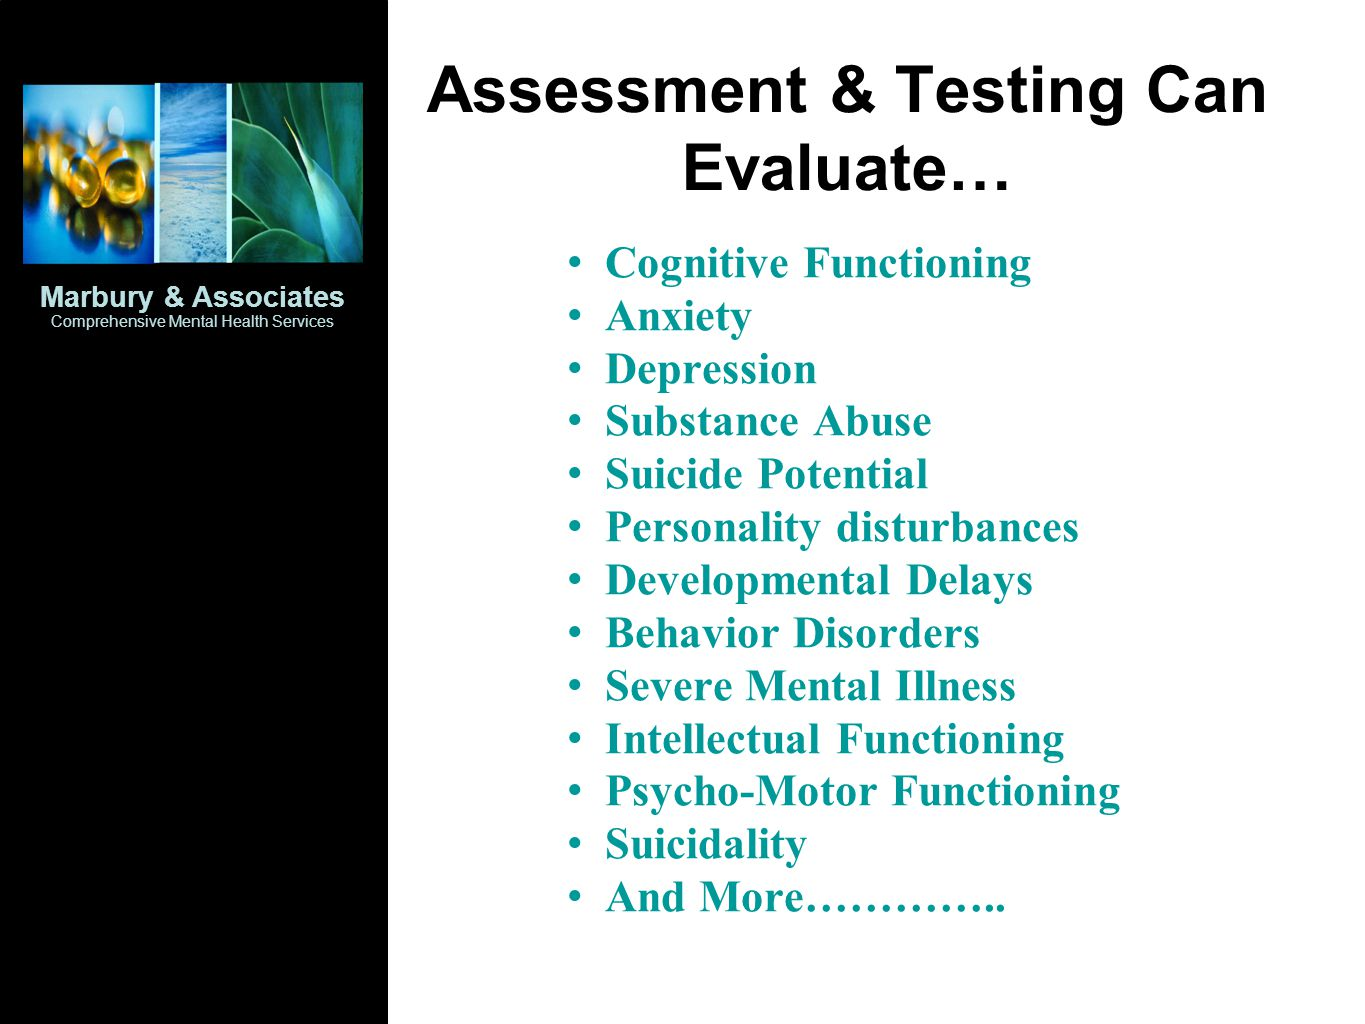 Assessment & Testing Can Evaluate…